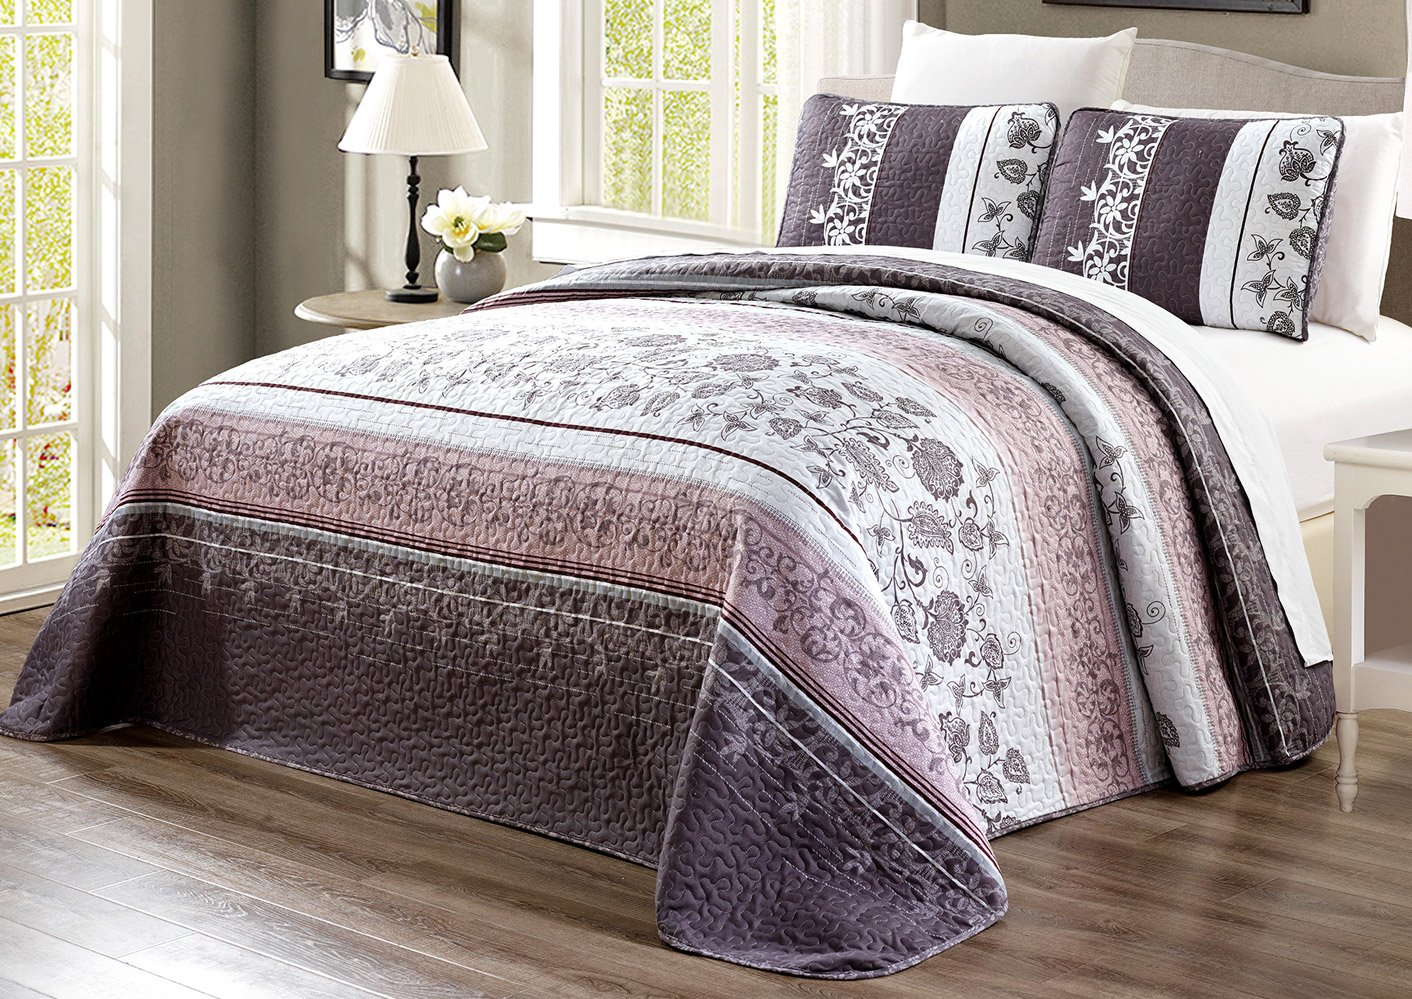 3-Piece Oversize (115'' X 95'') Fine printed Prewashed Quilt Set Reversible Bedspread Coverlet KING SIZE Bed Cover (Purple. Grey, Black, White, Floral)